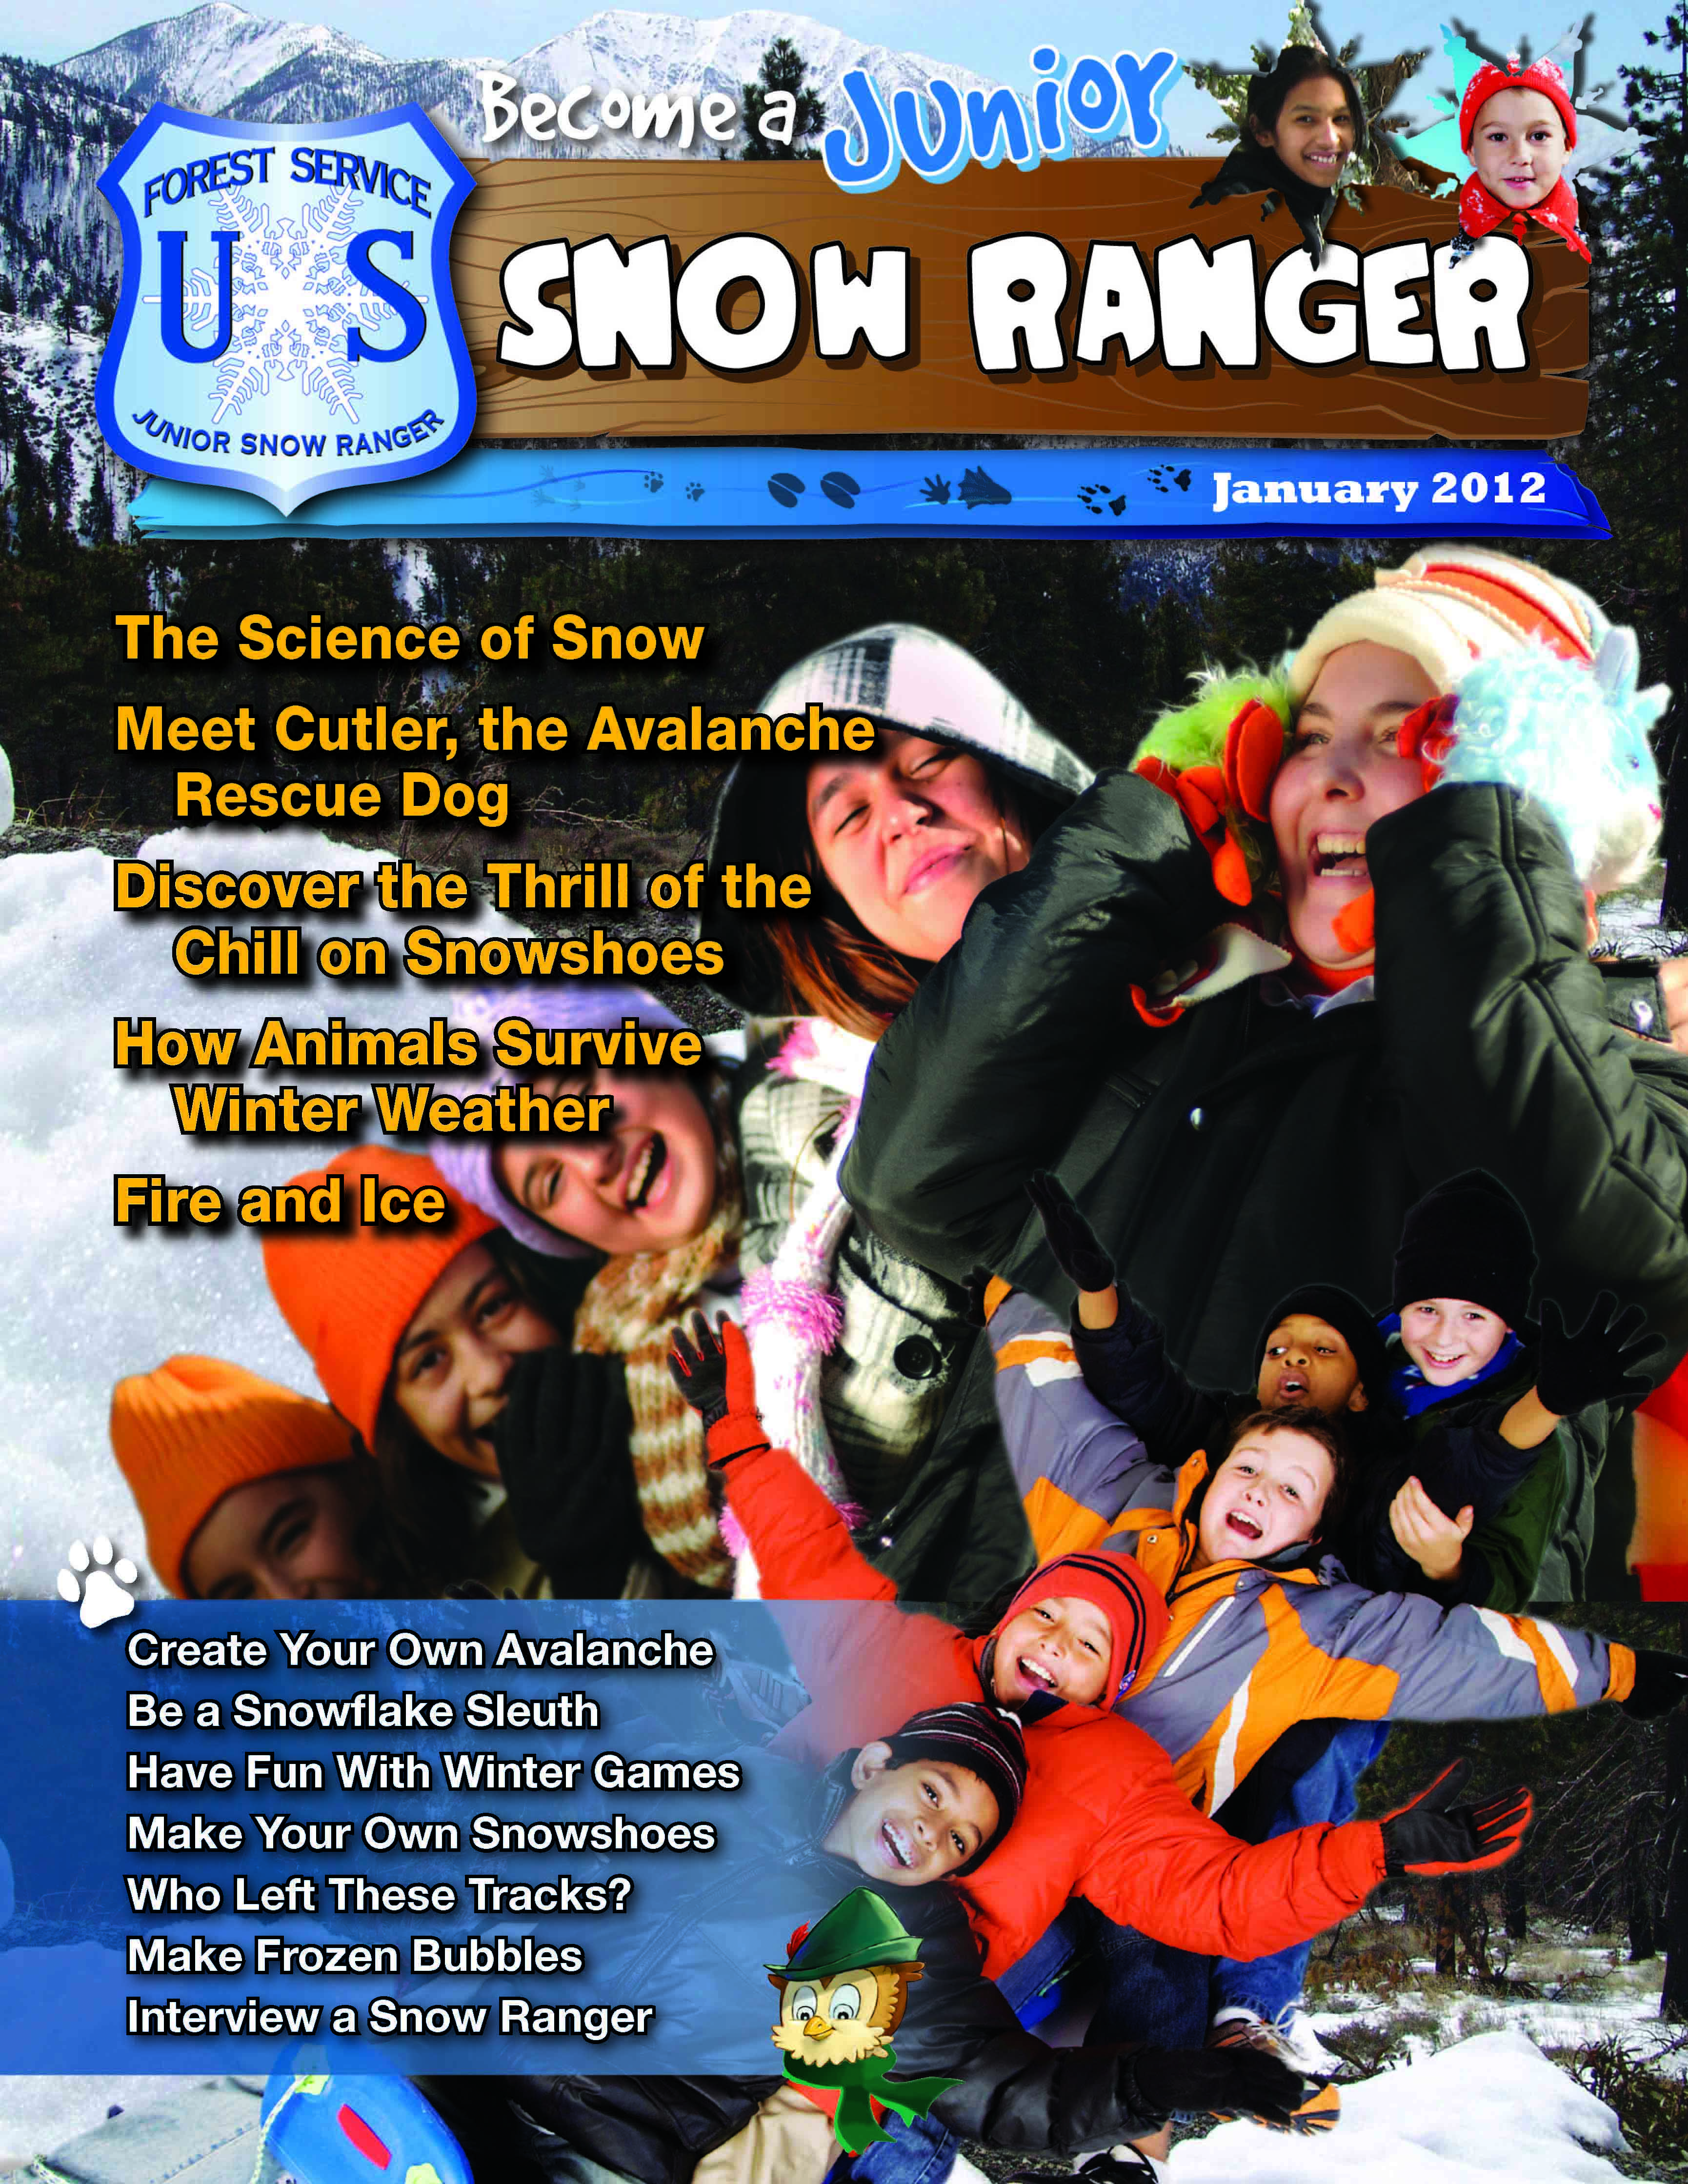 Conservation Education - Become a Junior Snow Ranger